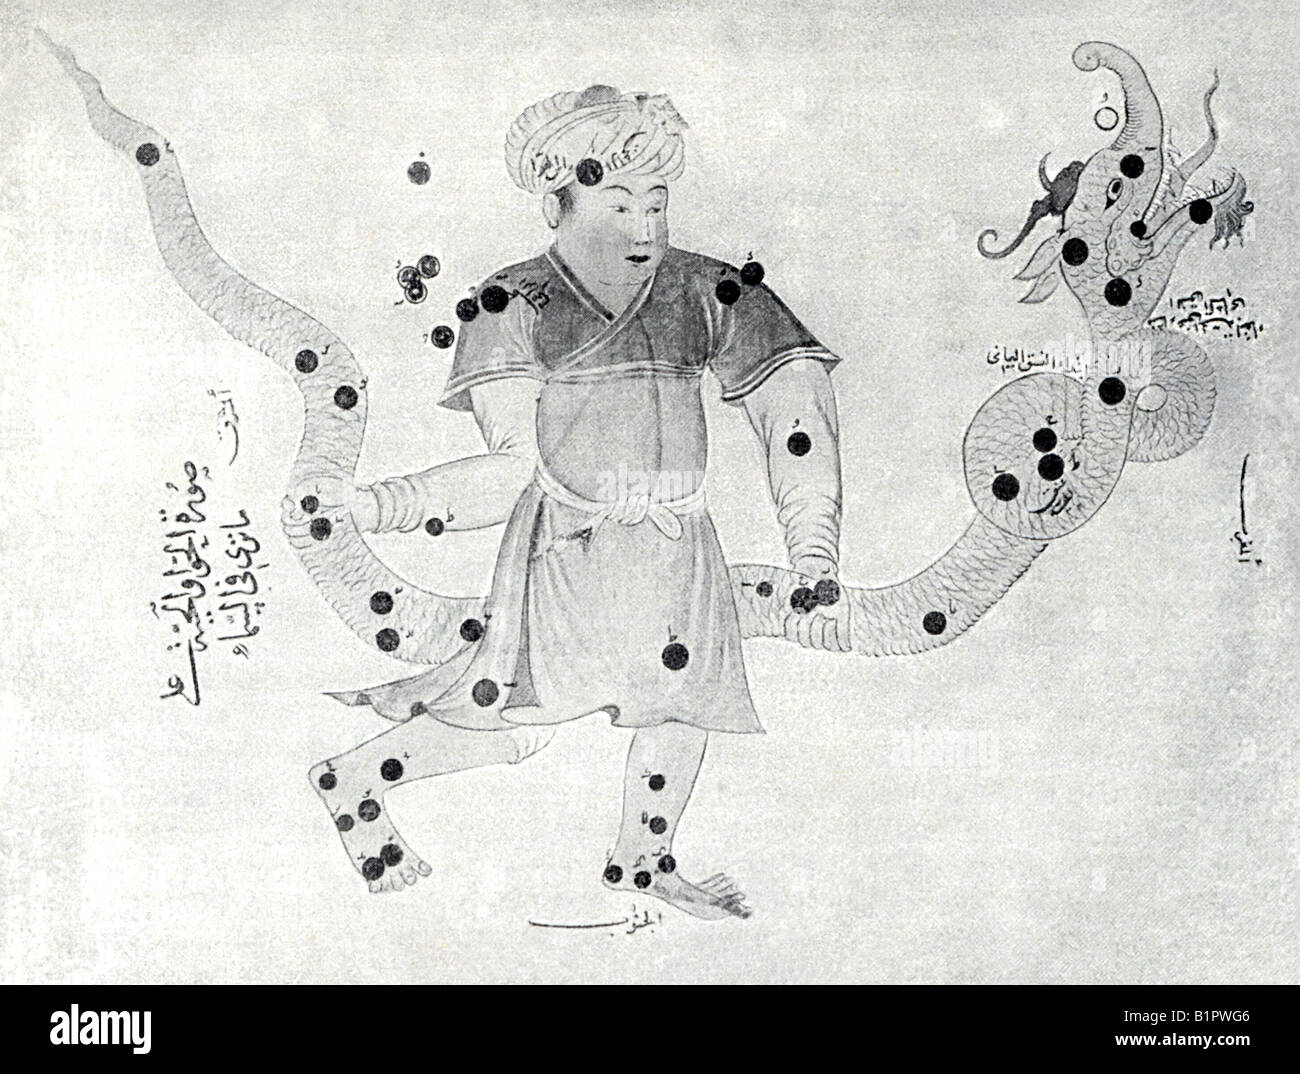 Image in Arab Work on Astronomy - Stock Image